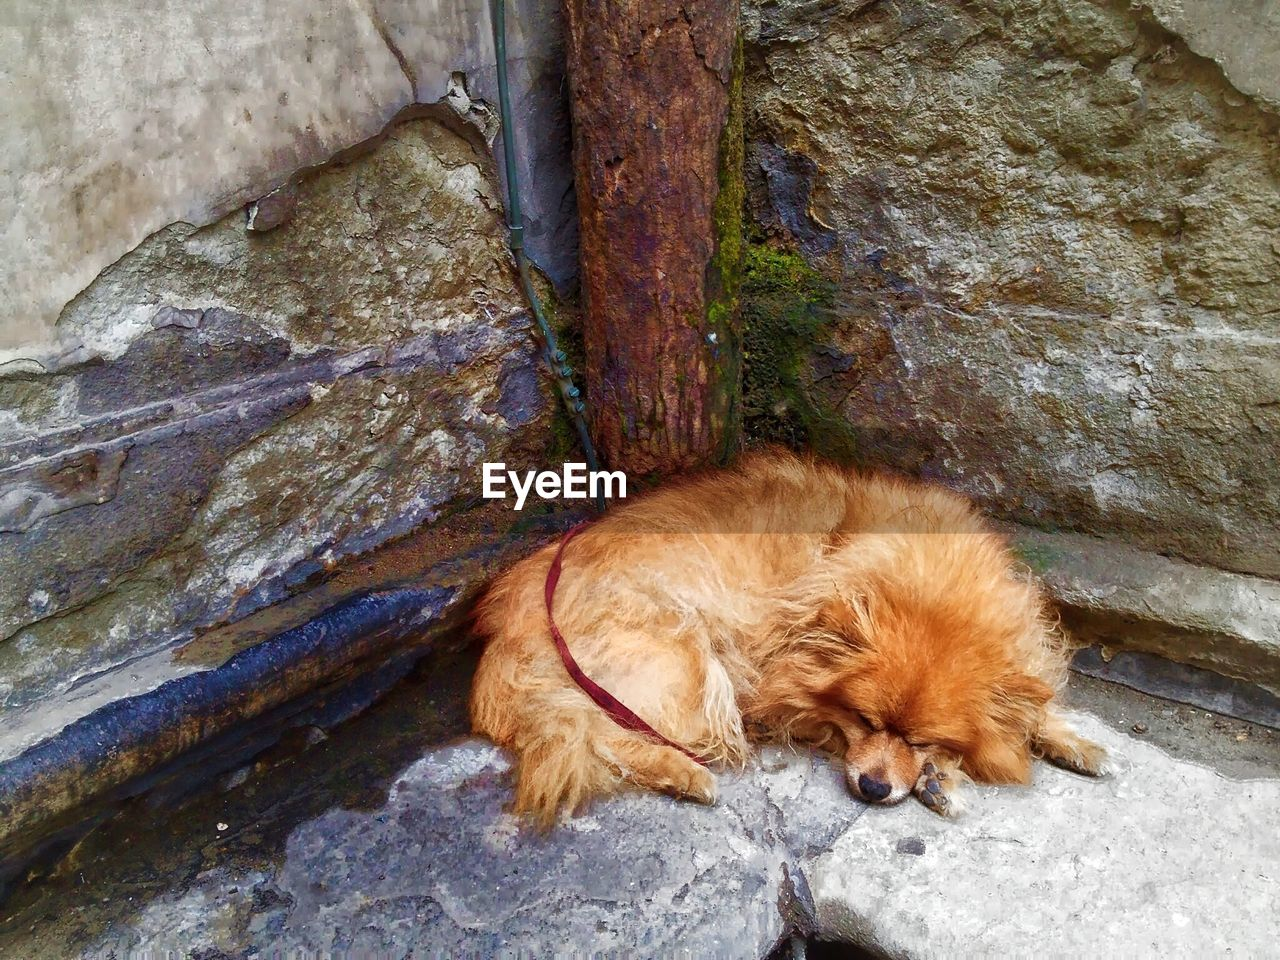 High angle view of dog sleeping outdoors